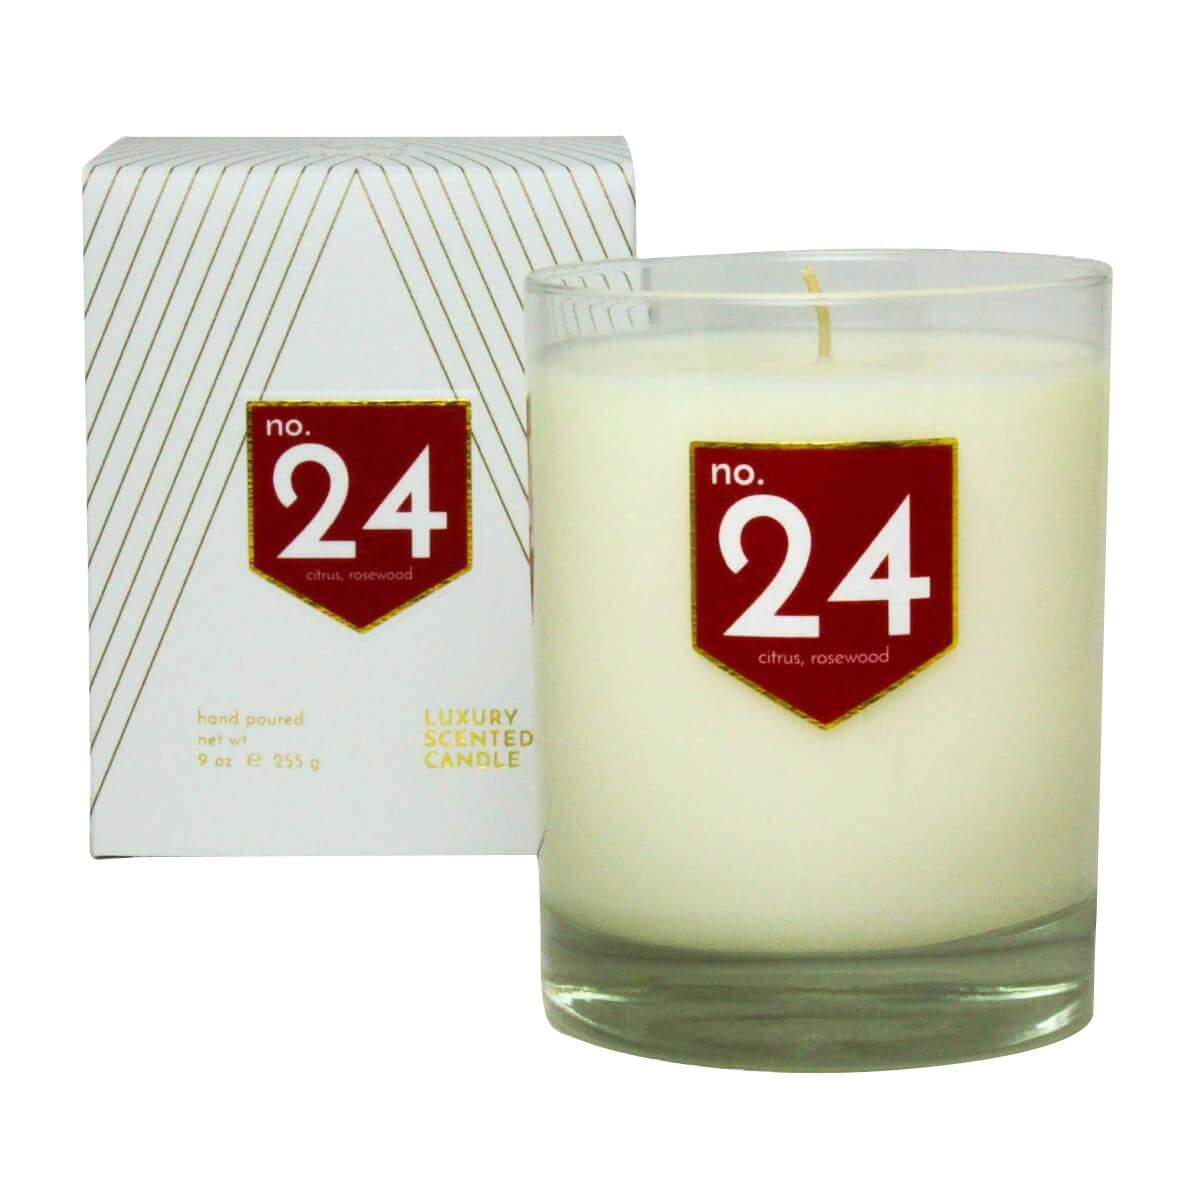 ACDC Candle Co Candles & Diffusers No. 24 Citrus Rosewood Scented Soy Candle